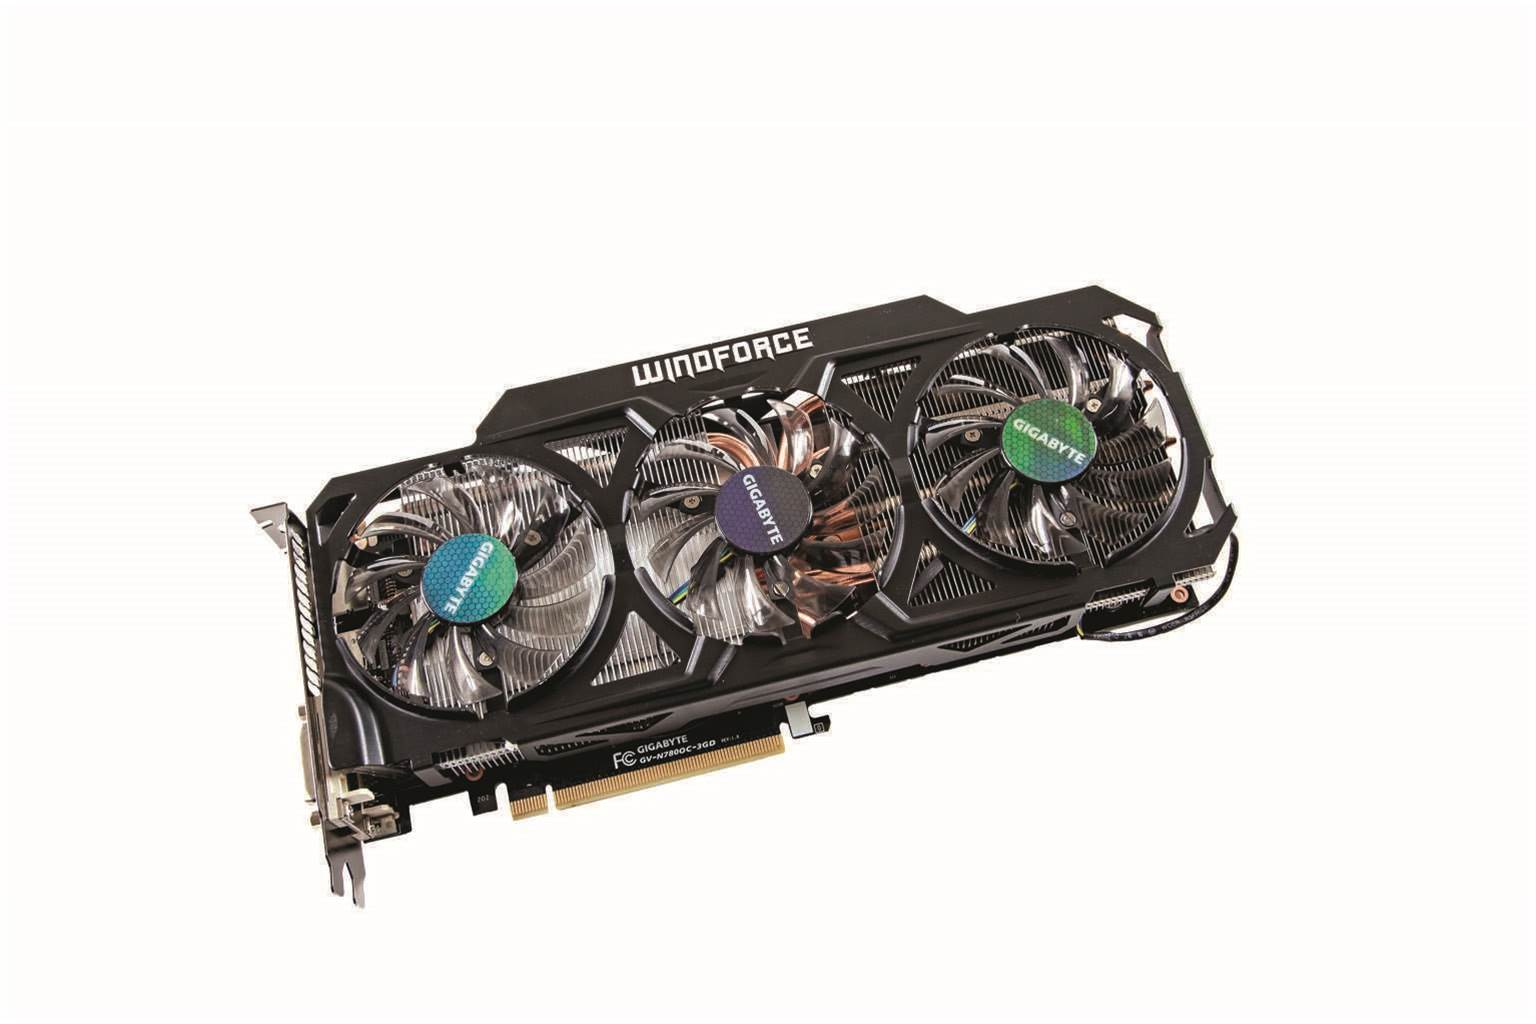 Review: Gigabyte GeForce GTX 780 OC Edition